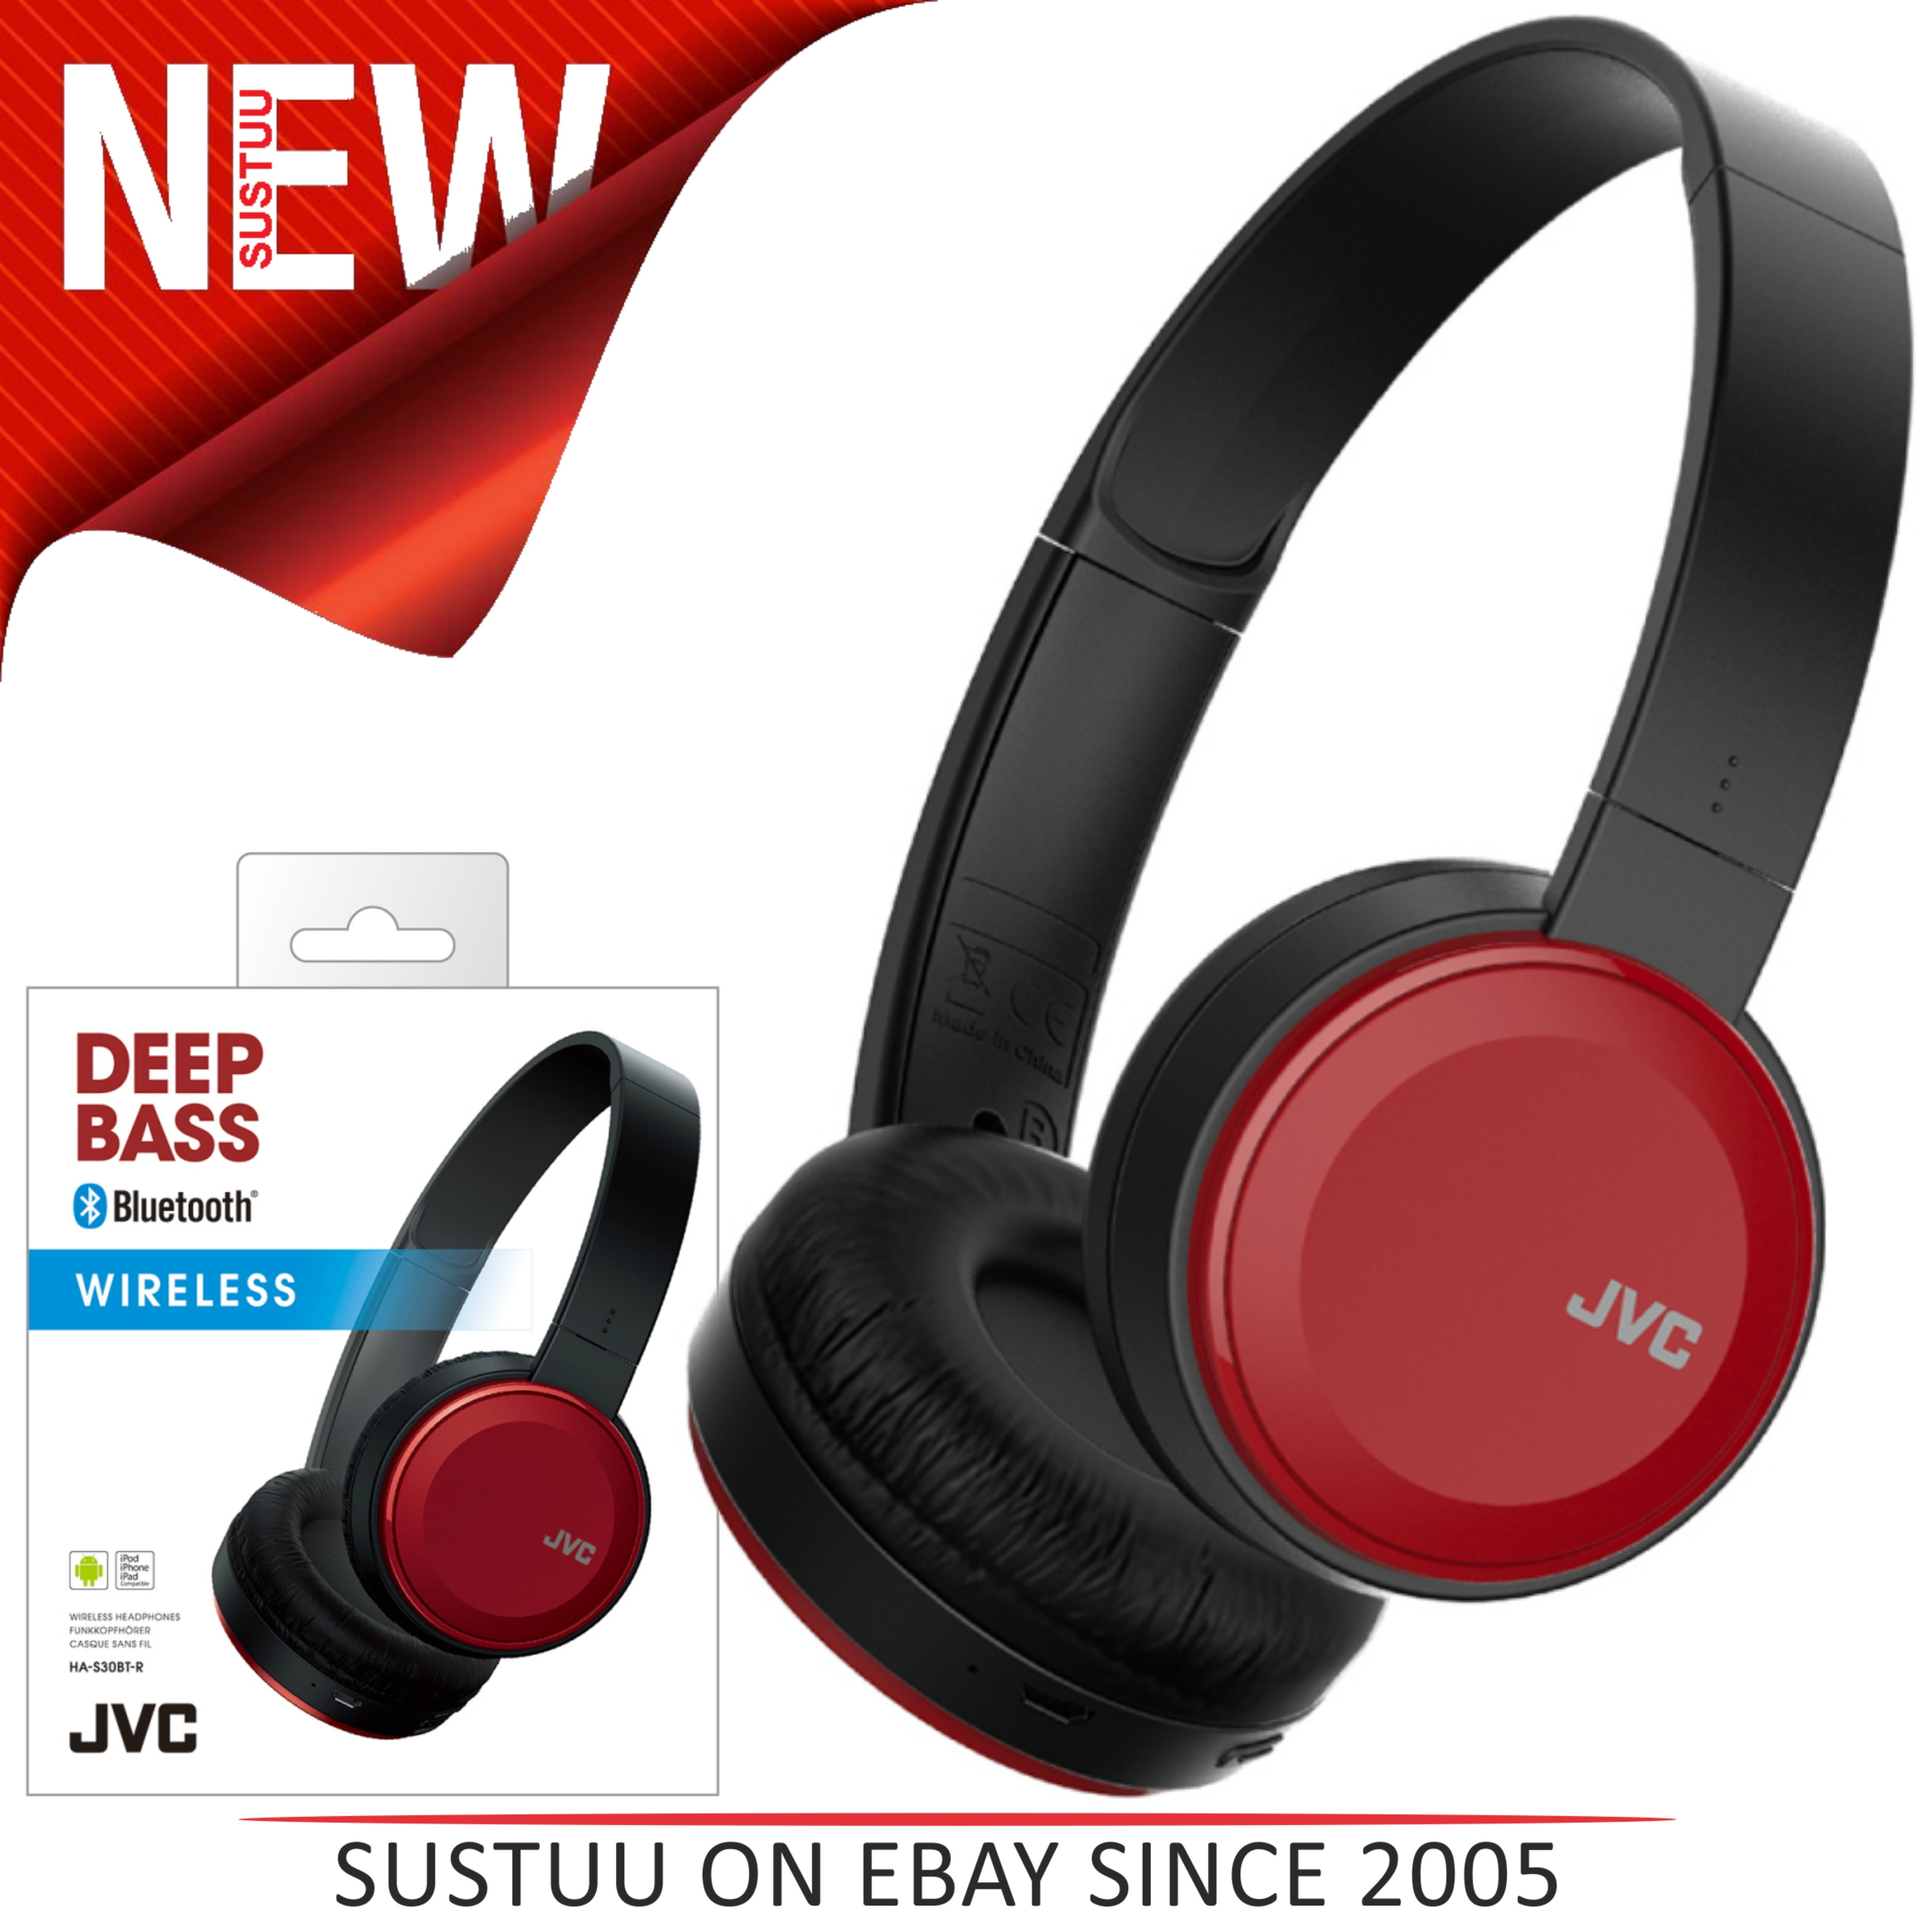 faf68a78c81 Details about JVC HAS30BTRE Deep Bass Wireless Bluetooth Foldable On Ear  Headphones - Red